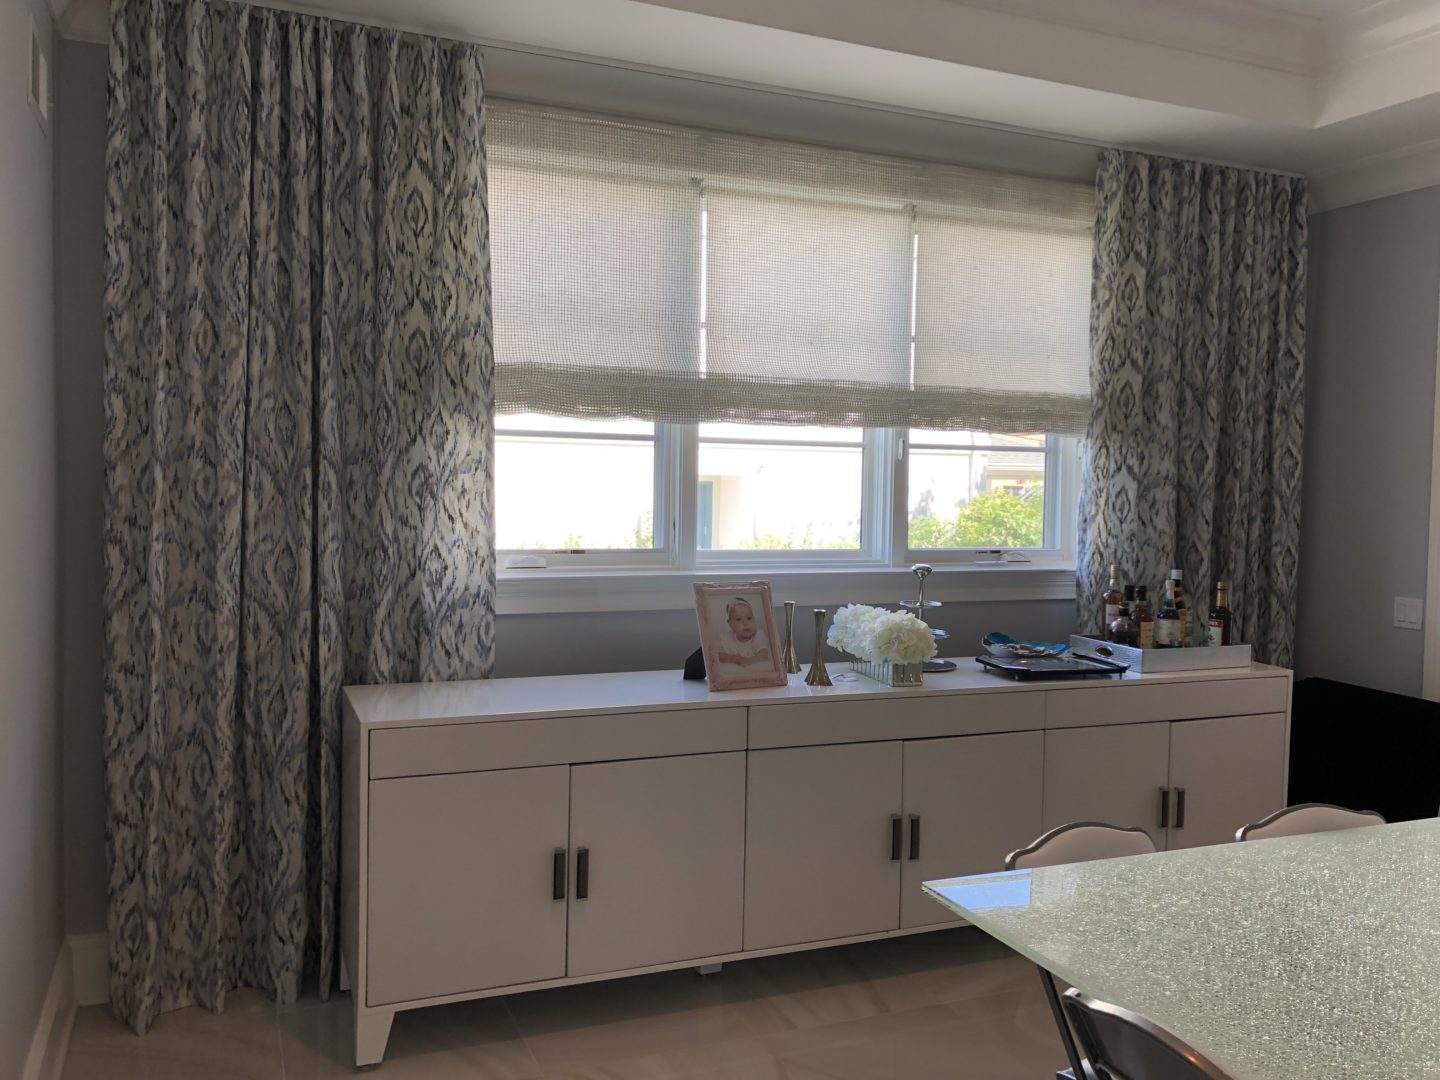 Curtains & Window Blind for Room